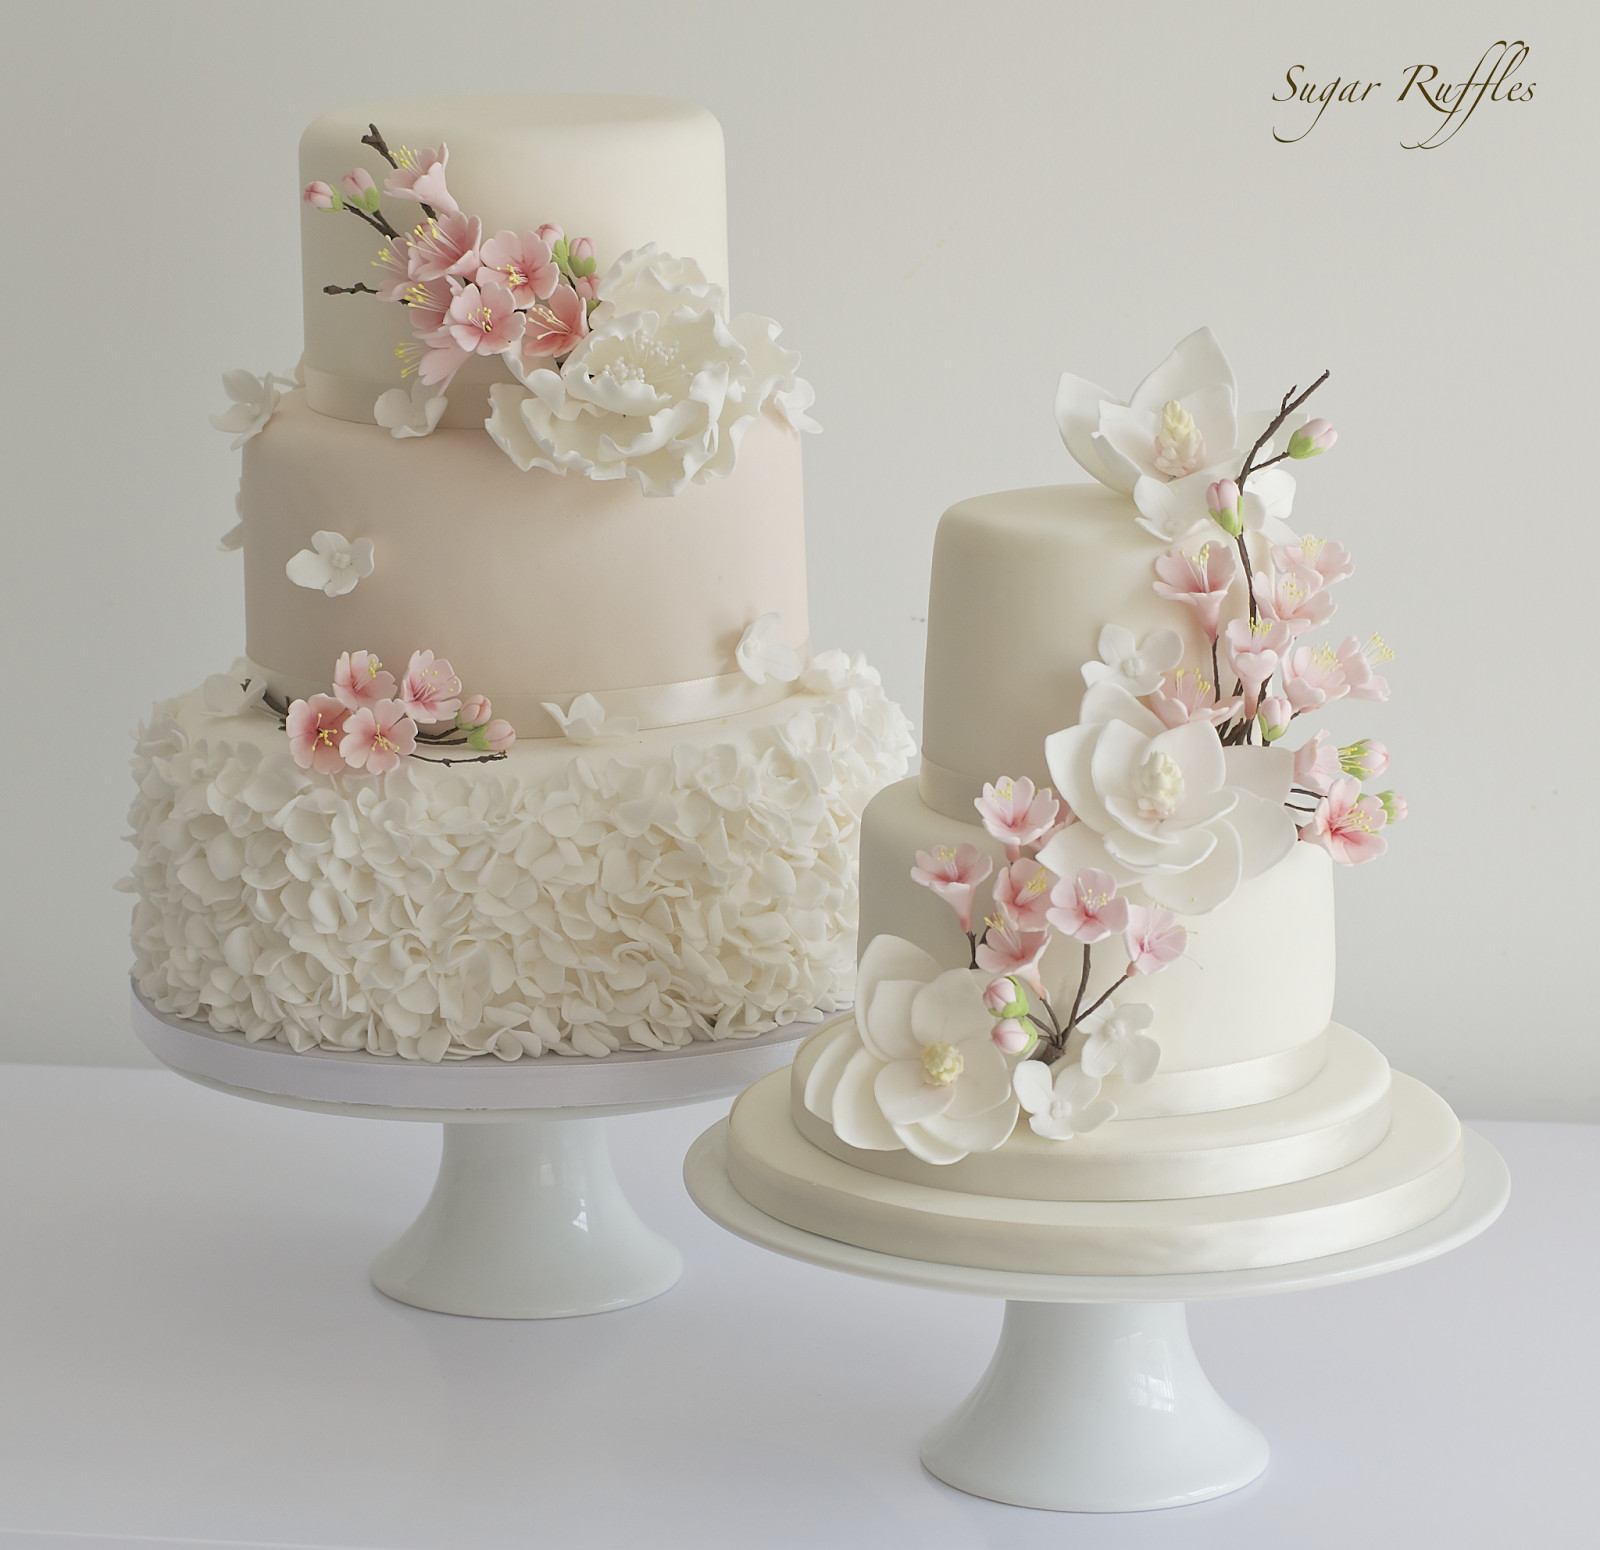 Wedding Cakes Images  Wedding Cakes Gallery HD